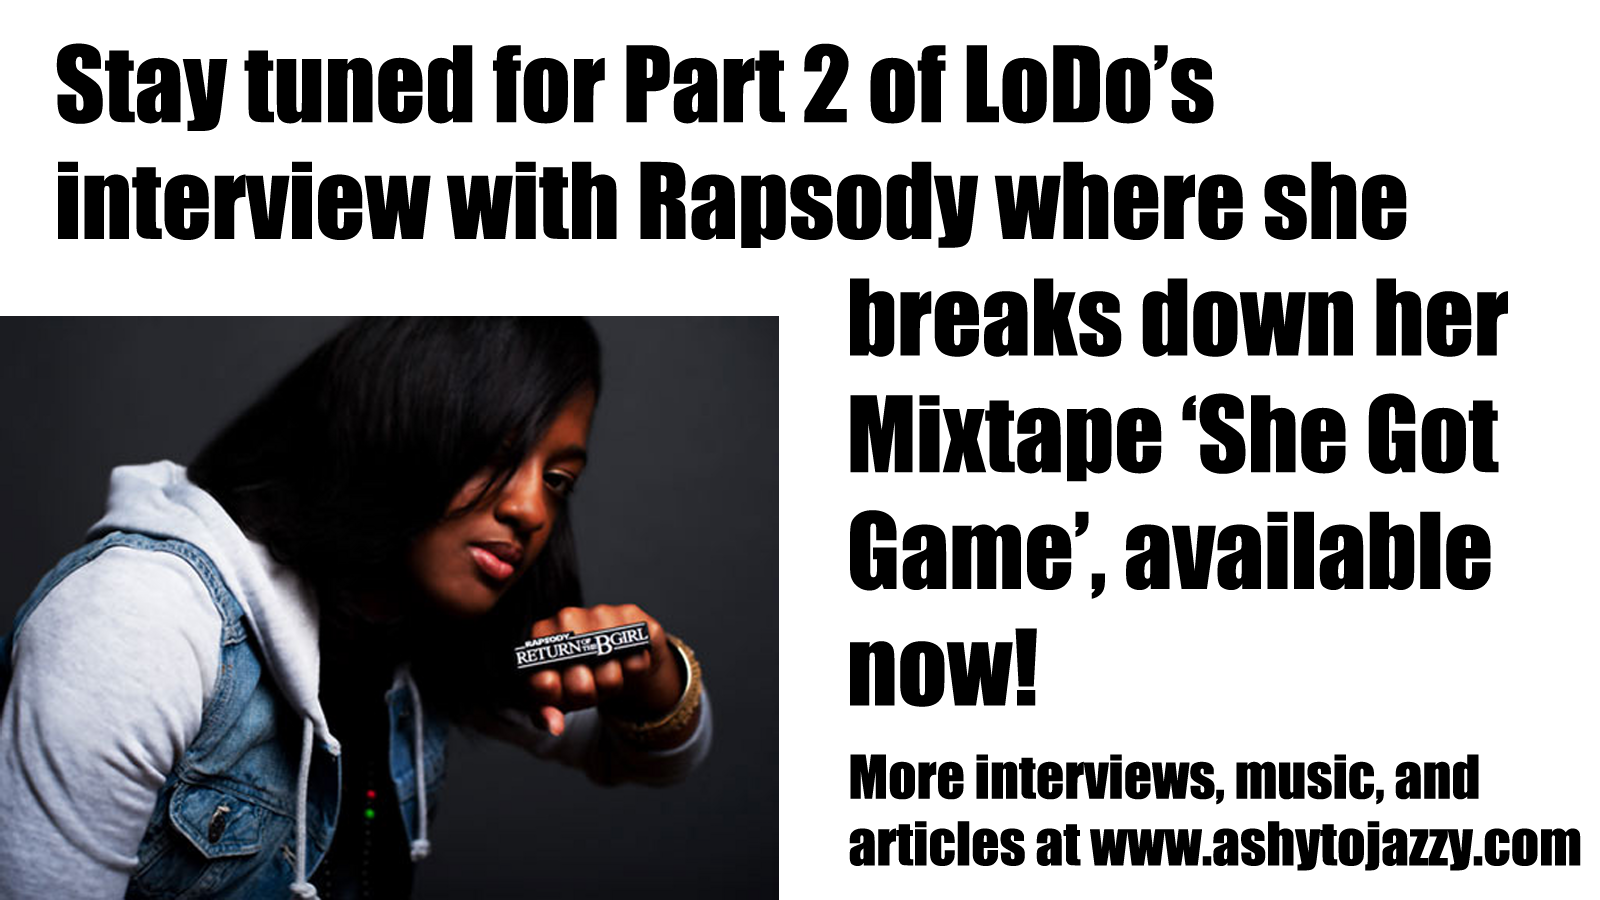 LoDo Rapsody hip hop artist mc emcee she got game interview part 2